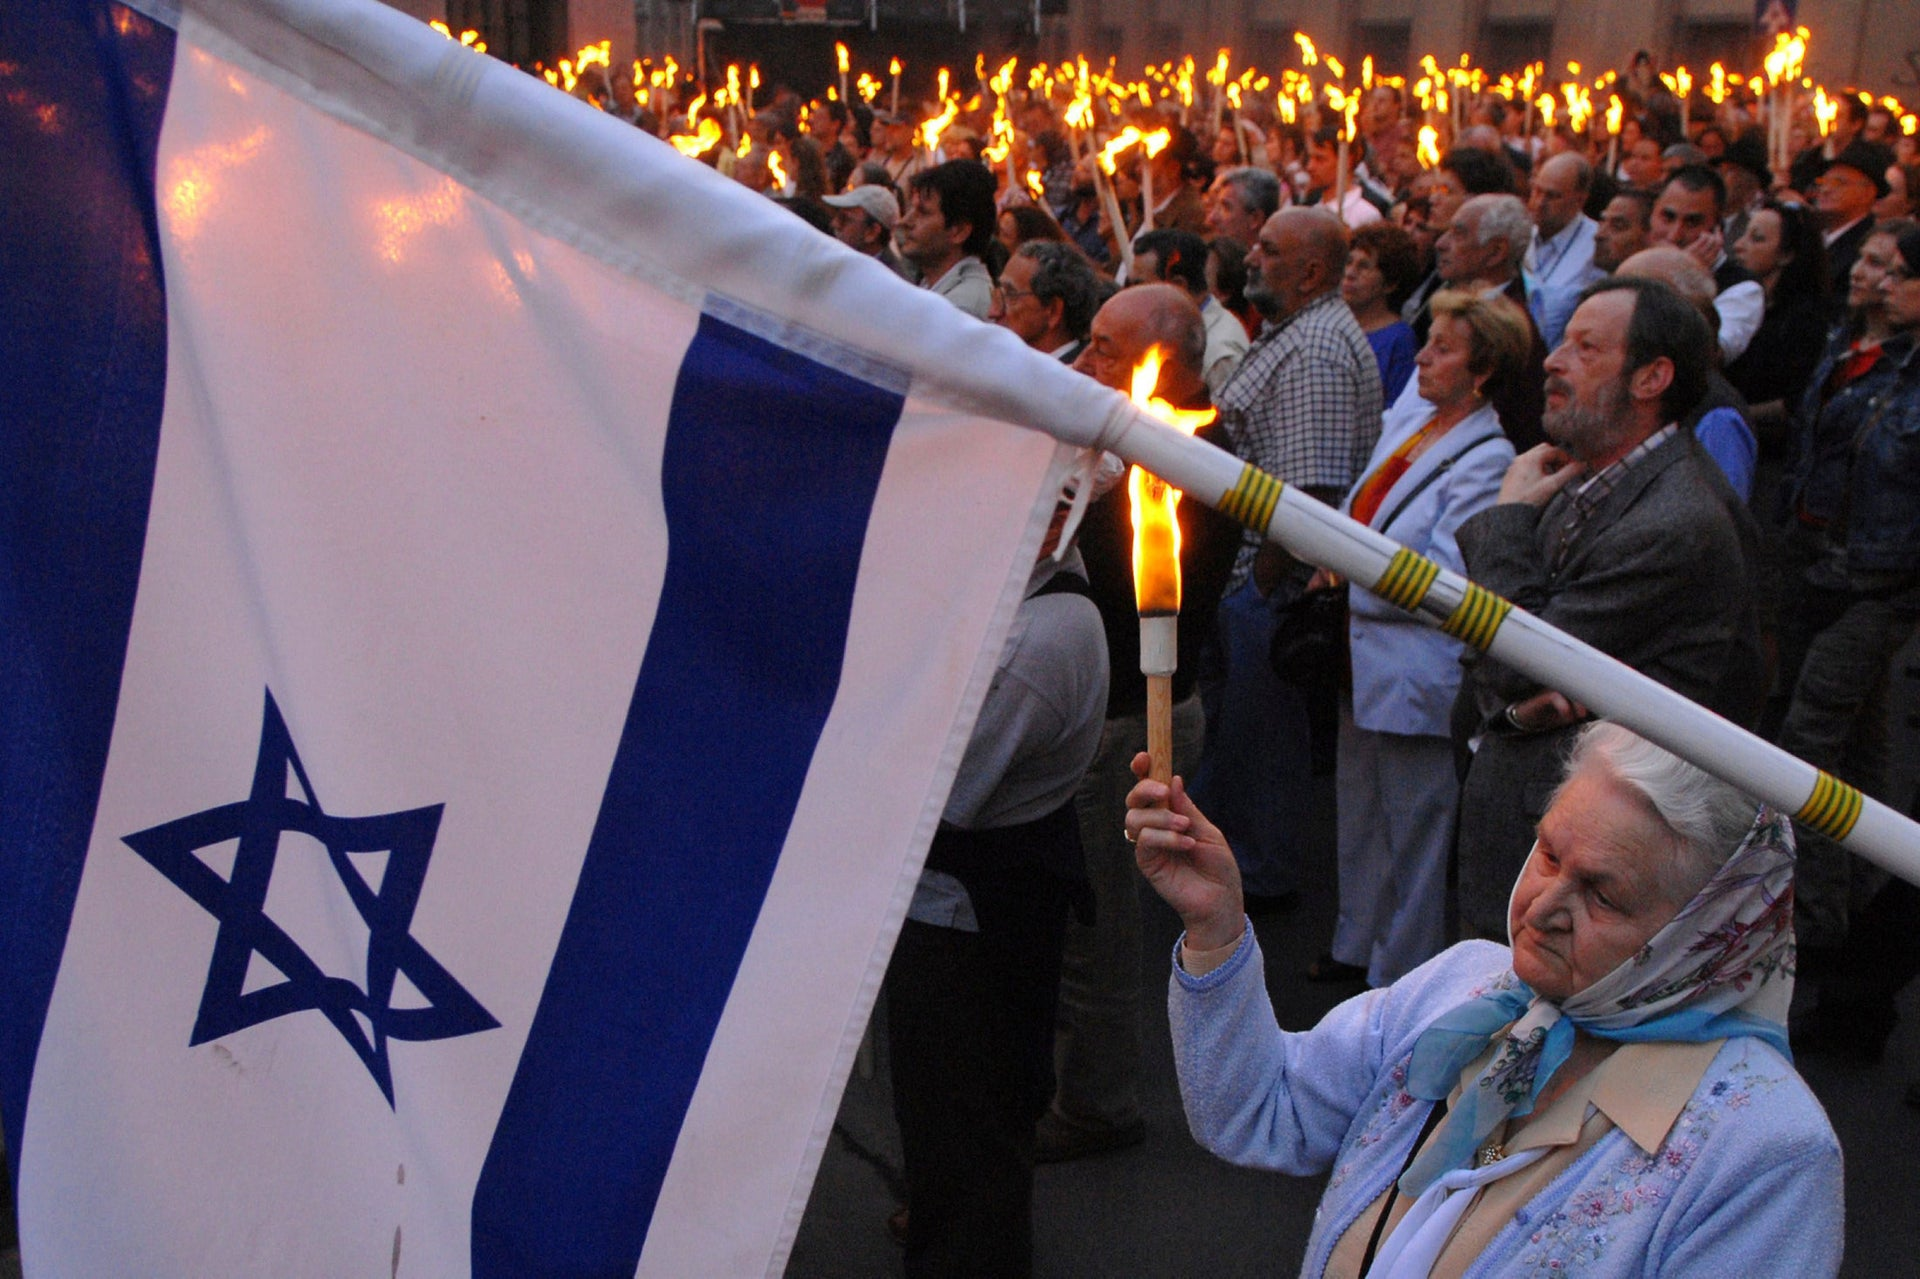 An Israeli flag is seen as thousands gather together for the March of Life to remember for the victims of the Holocaust in front of the Dohany street synagogue in Budapest, Hungary Sunday, April 15, 2007. Today is the official memorial day for the more then 600,000 victims of the Hungarian Holocaust marking the day when members of the Hungarian Nazi party shot Jews into the River Danube during WWII.